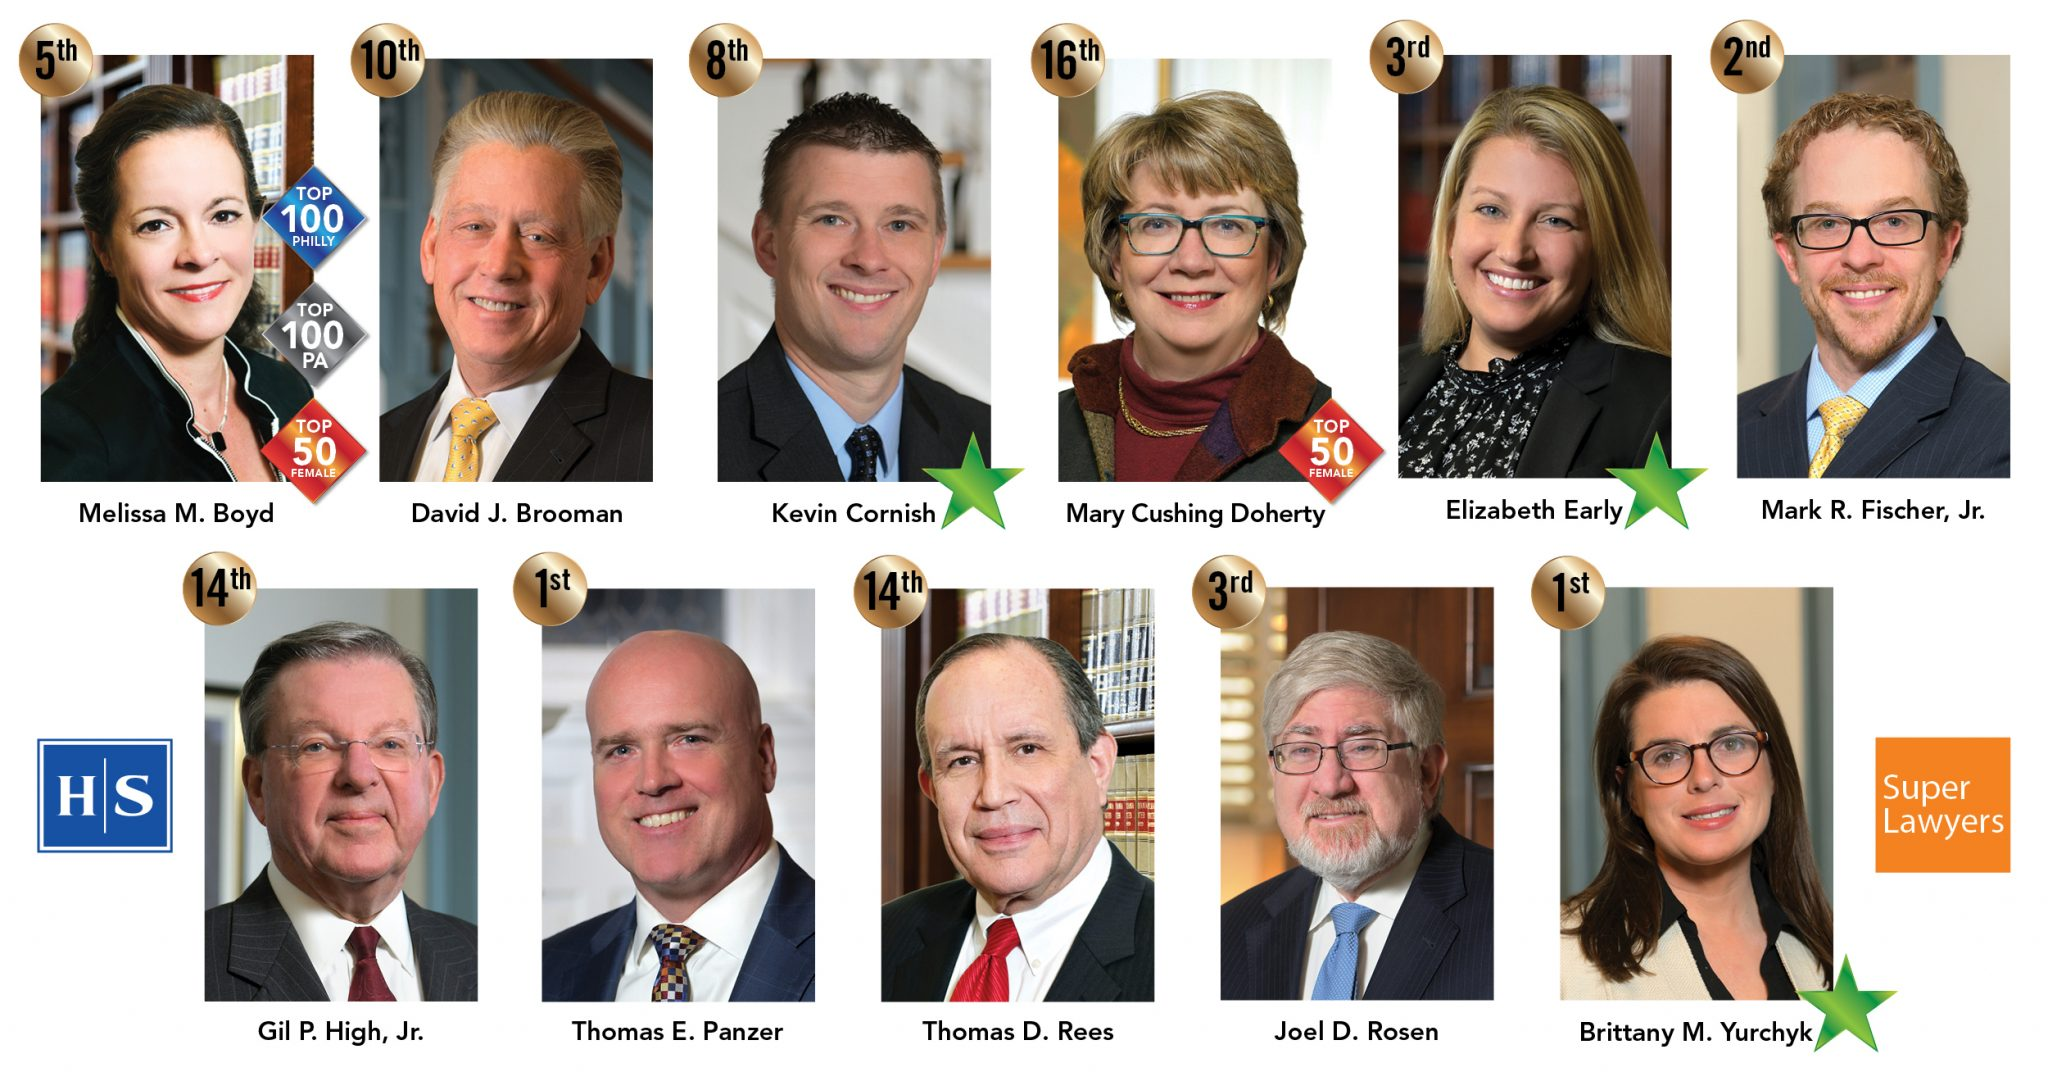 11 High Swartz Attorneys named to PA Super Lawyers and Rising Stars lists